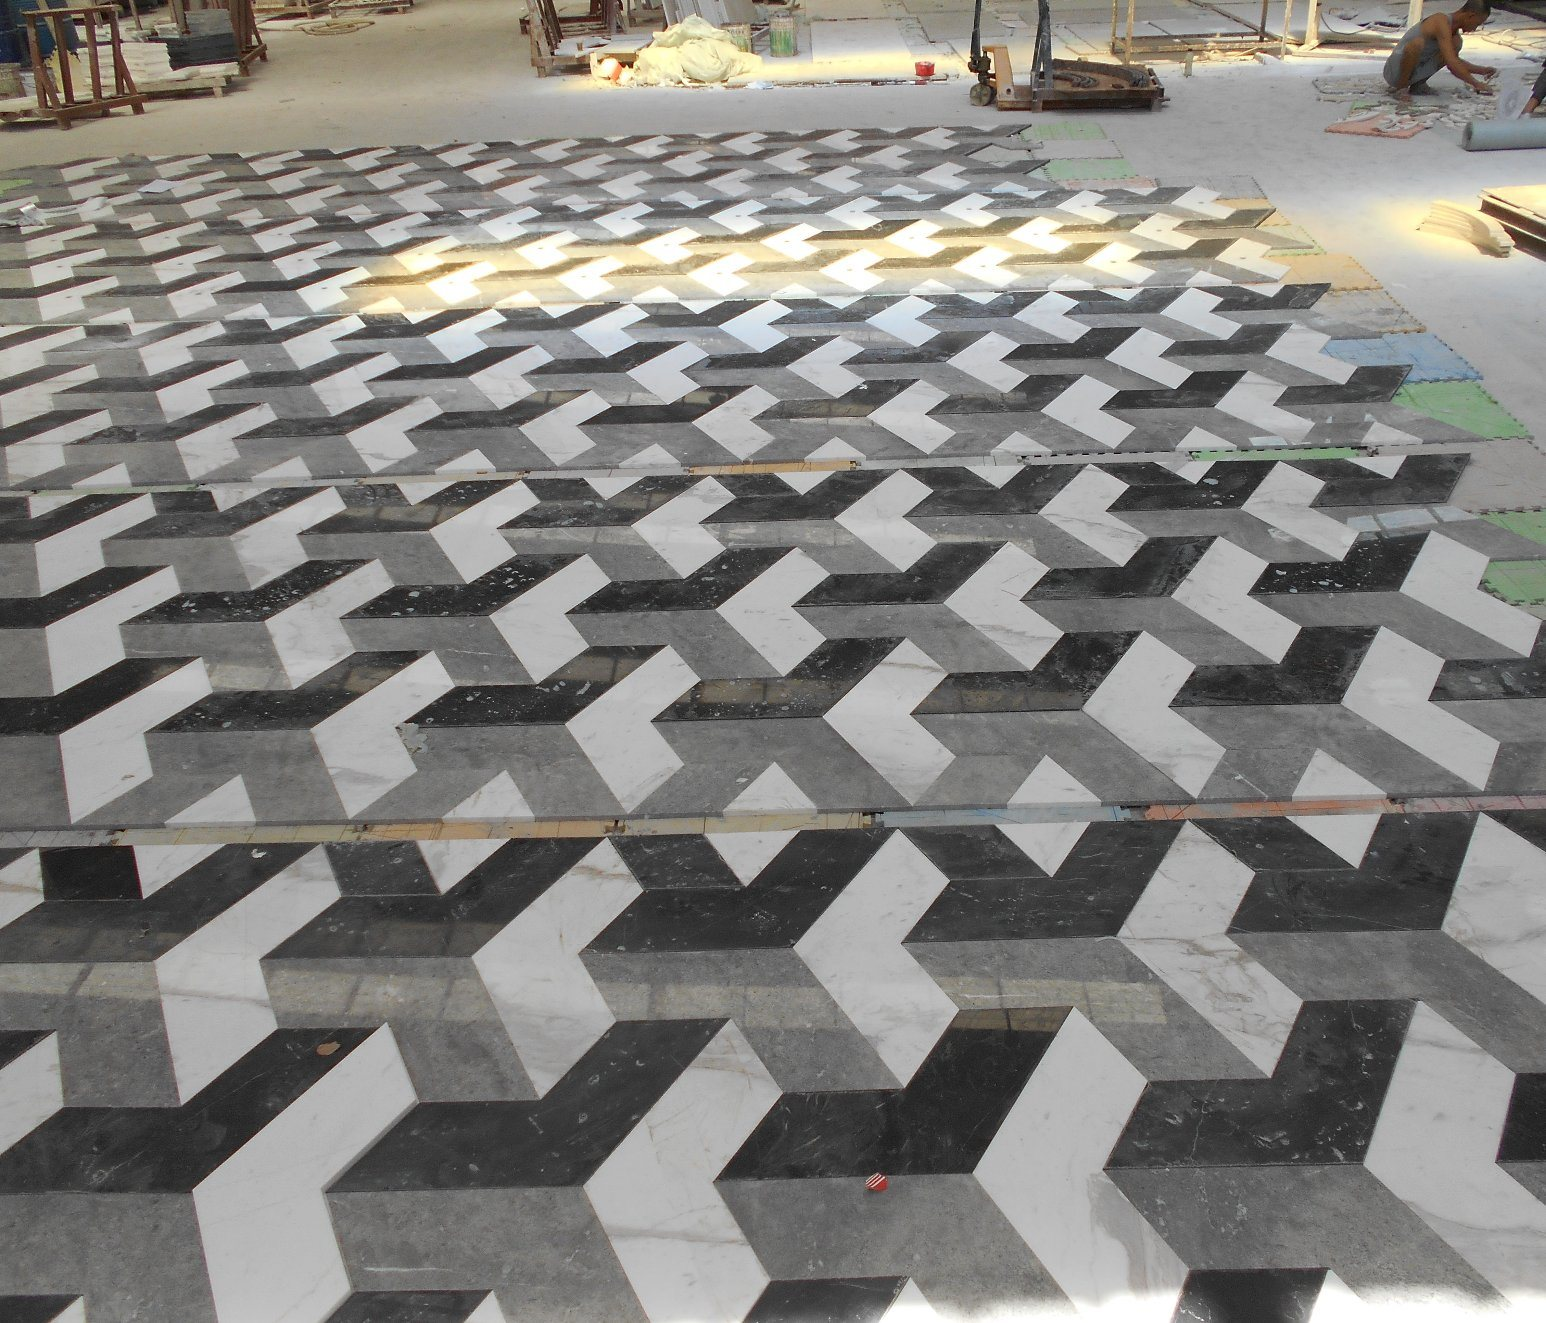 China Wholesale Floor Design Marble Pattern 3d Tile In Black And White China 3d Marble Floor Design Marble Pattern 3d Tile